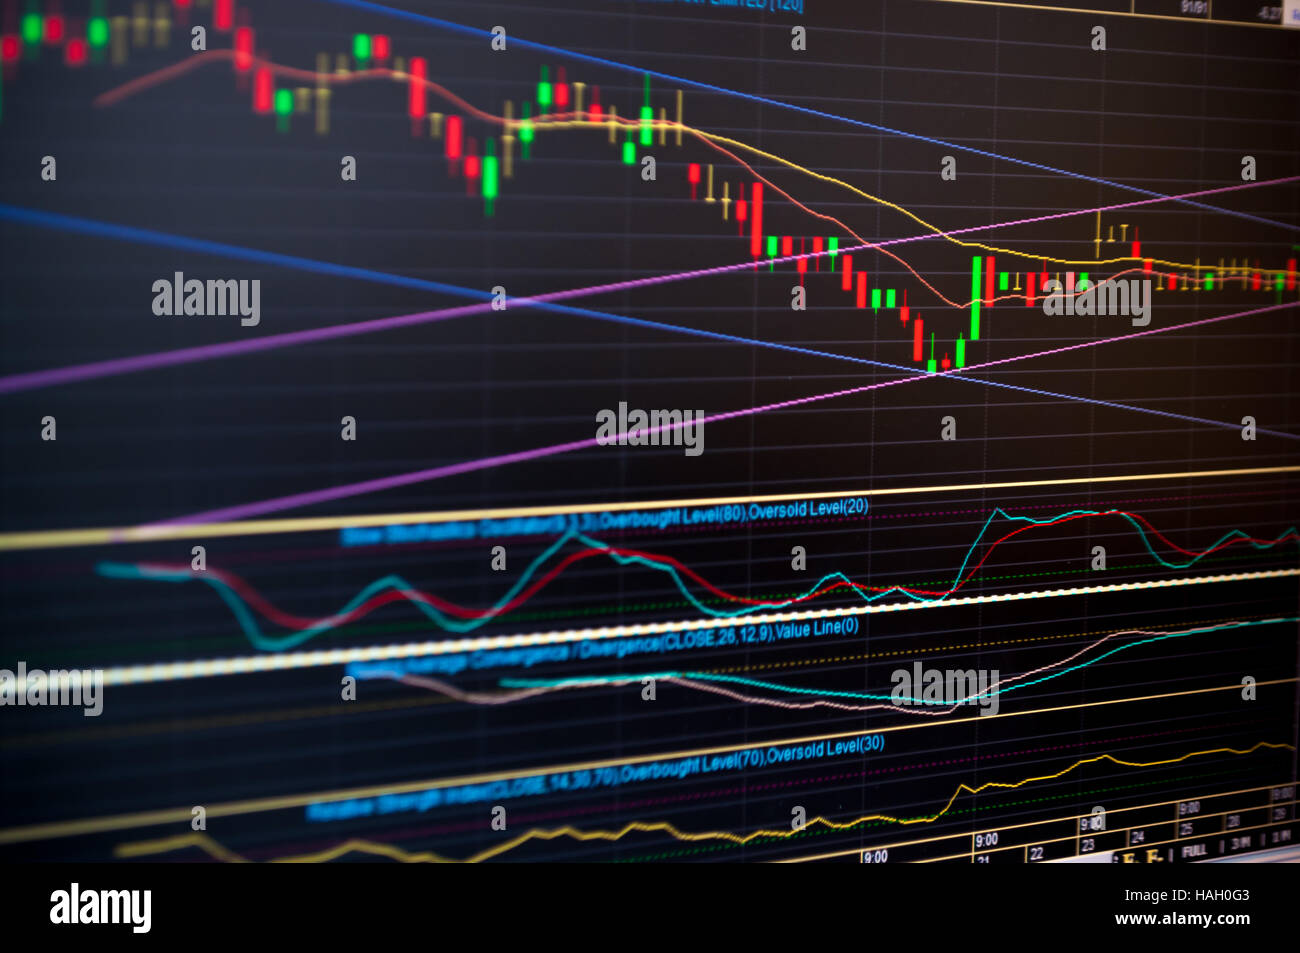 Stock candle stick chart with two trend line channels showing triangle price pattern, also with moving average lines, - Stock Image